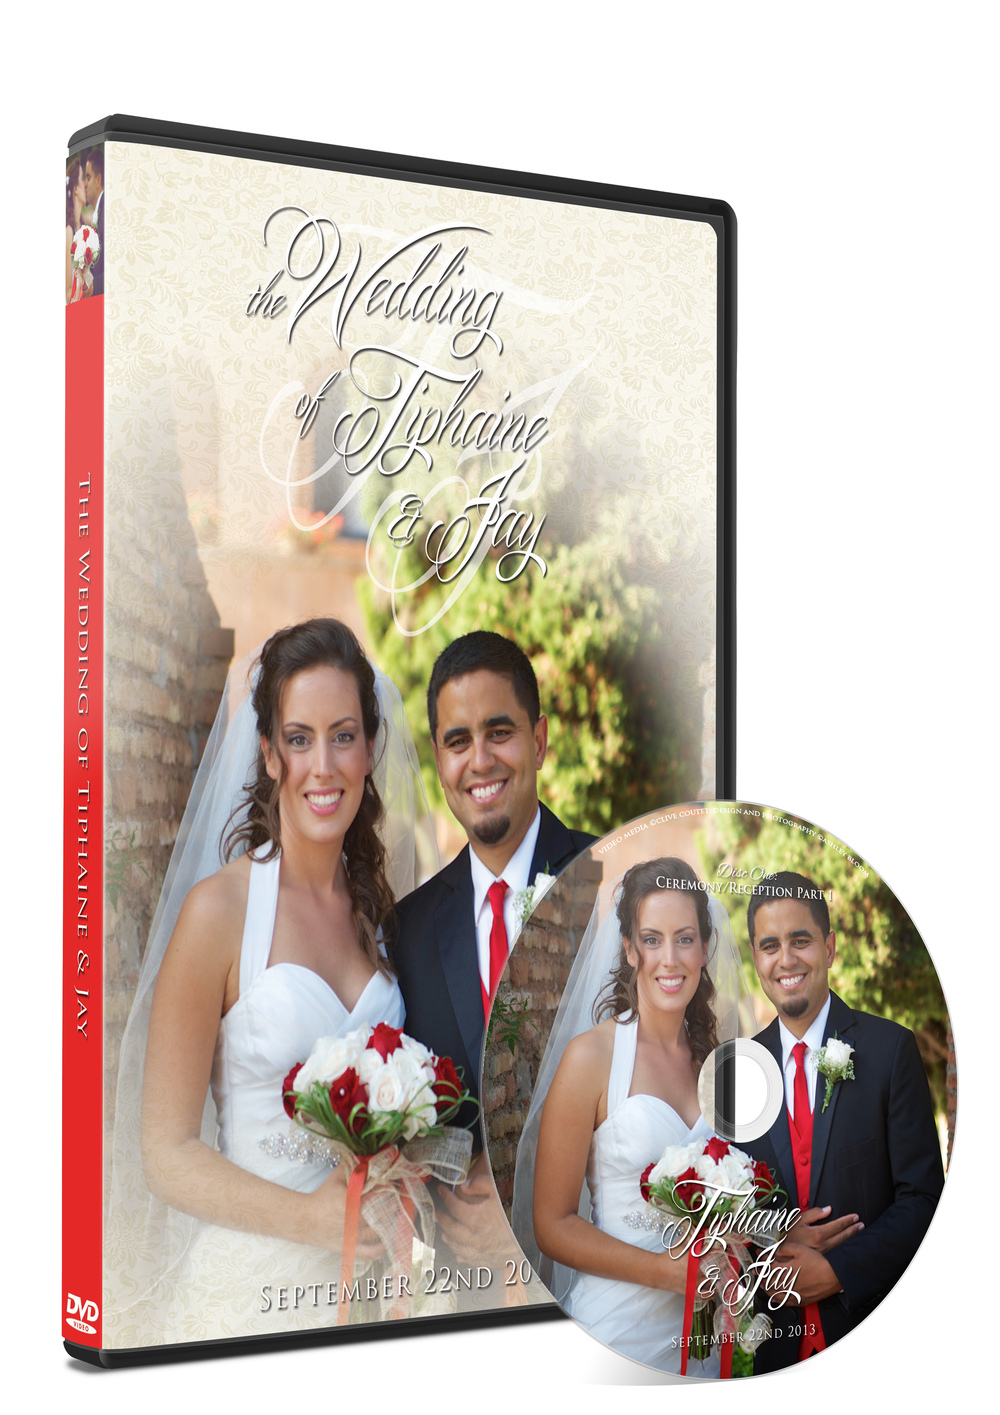 Wedding DVD Template.jpg